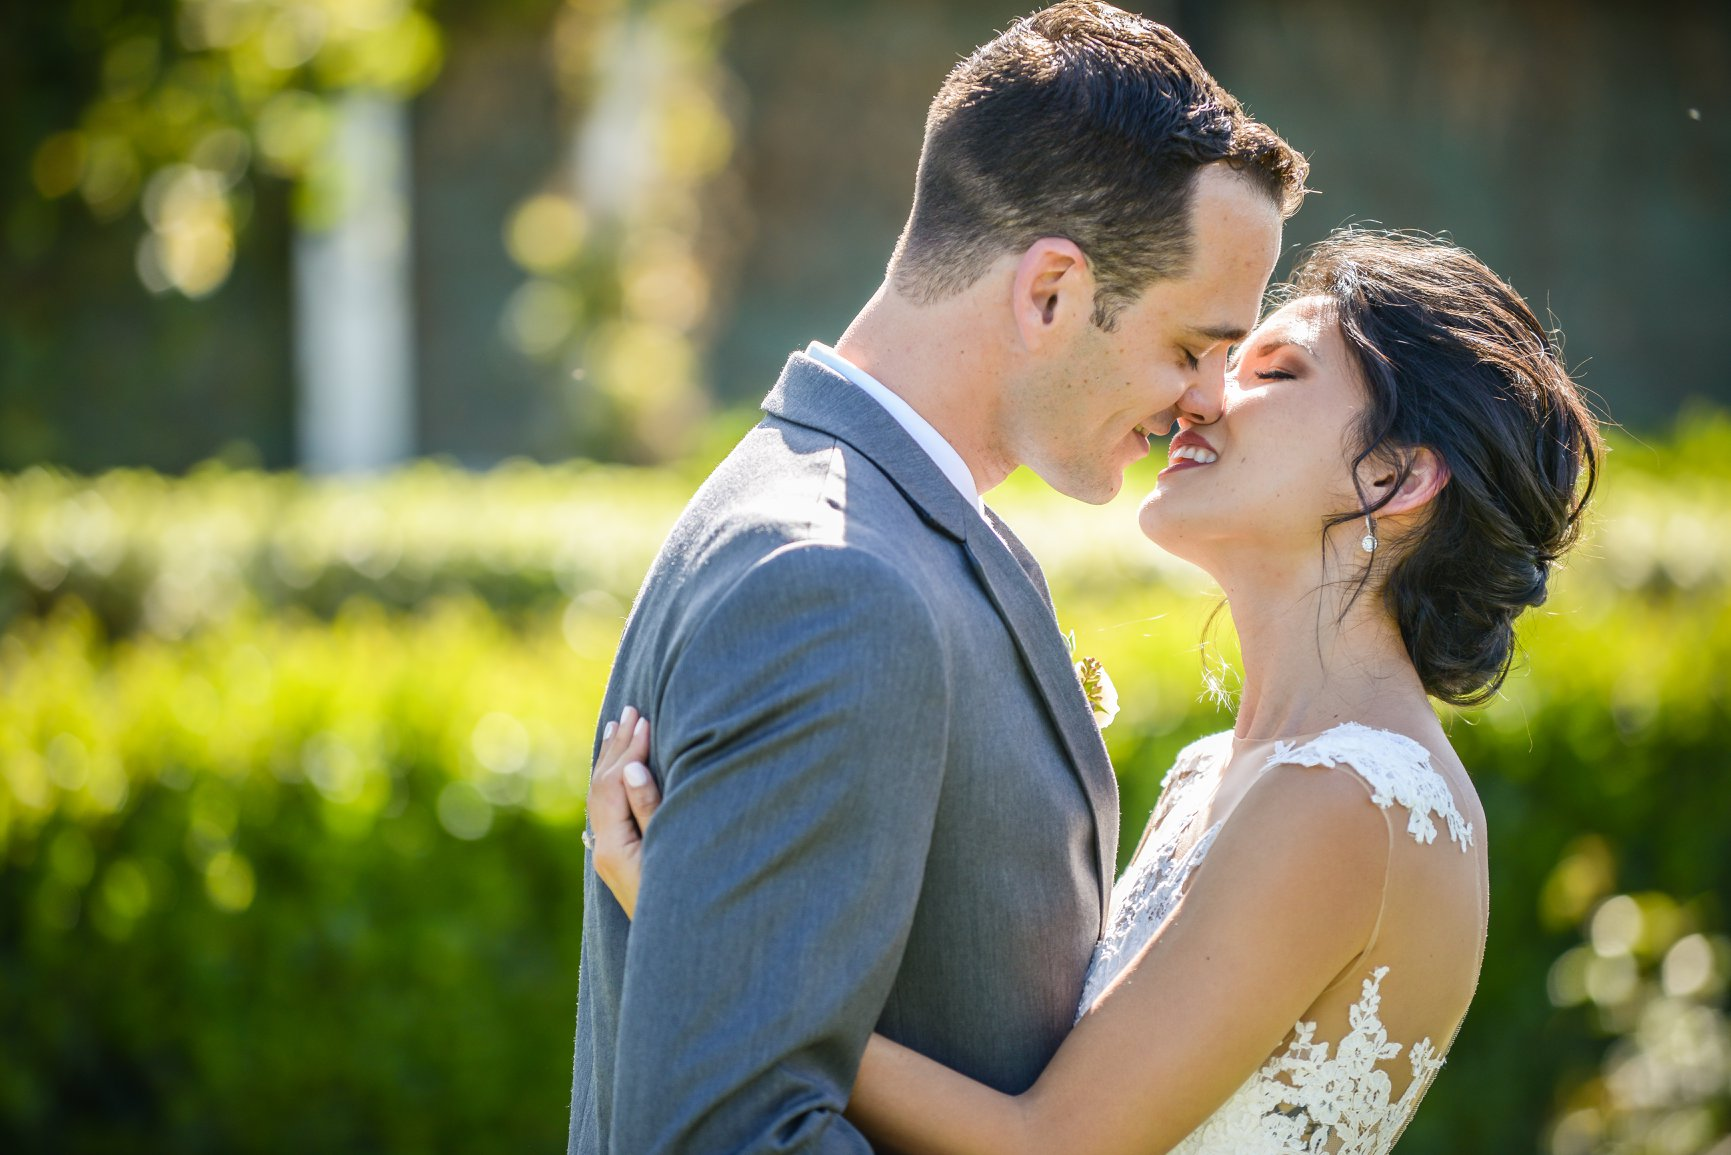 Crystal and Logan celebrated their wedding at Ponte Winery in Temecula on April 8, 2018.